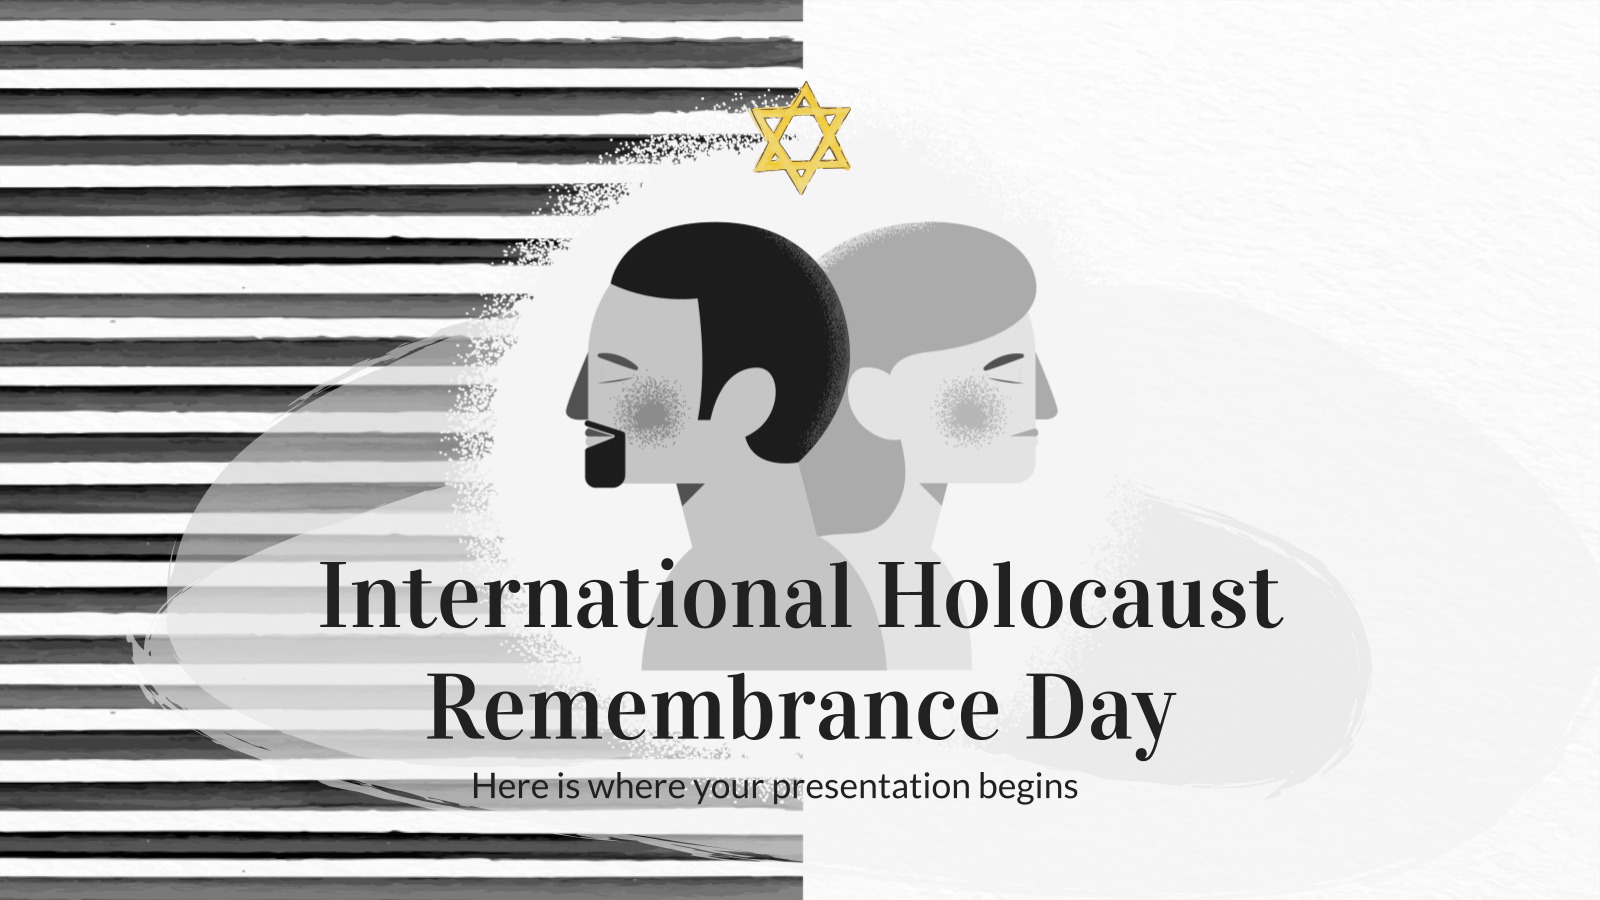 International Holocaust Remembrance Day presentation template